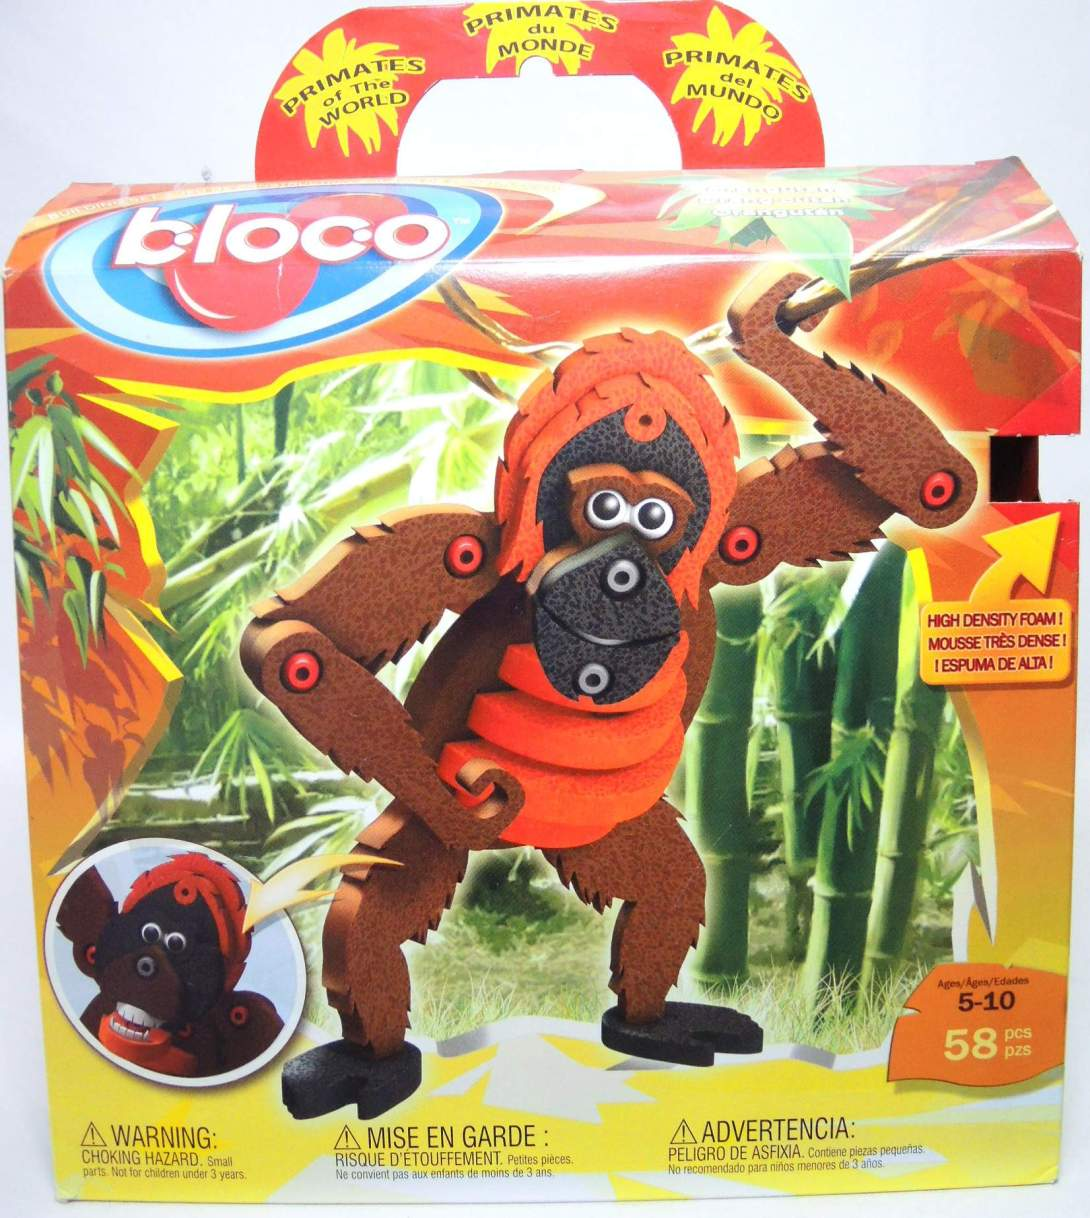 Bloco Toys Building Set - Orangutan (58 foam pieces) Bloco Toys, Bloco, Legos & Mega Bloks, 2010